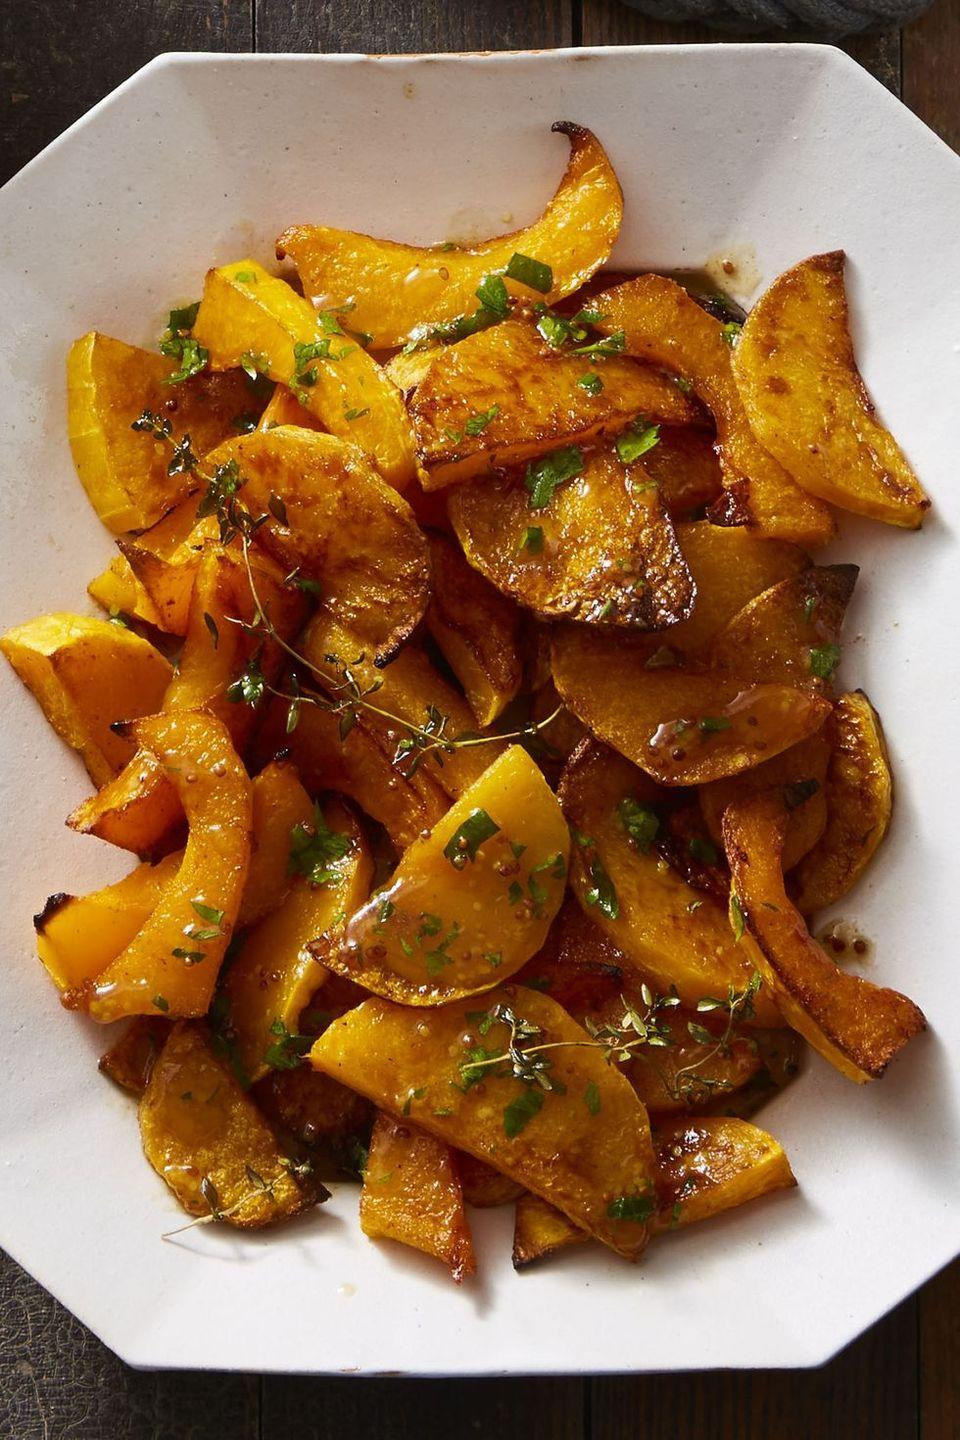 """<p>Apple cider, red wine vinegar, and whole-grain mustard make a bright, punchy vinaigrette for sweet butternut squash.</p><p><em><a href=""""https://www.goodhousekeeping.com/food-recipes/easy/a46622/spice-roasted-butternut-squash-with-cider-vinaigrette-recipe/"""" rel=""""nofollow noopener"""" target=""""_blank"""" data-ylk=""""slk:Get the recipe for Spice-Roasted Butternut Squash with Cider Vinaigrette »"""" class=""""link rapid-noclick-resp"""">Get the recipe for Spice-Roasted Butternut Squash with Cider Vinaigrette »</a></em></p><p><strong>RELATED: </strong><a href=""""https://www.goodhousekeeping.com/food-recipes/g3658/best-apple-recipes/"""" rel=""""nofollow noopener"""" target=""""_blank"""" data-ylk=""""slk:The 80 Tastiest Apple Recipes to Try for Fall"""" class=""""link rapid-noclick-resp"""">The 80 Tastiest Apple Recipes to Try for Fall</a><br></p>"""